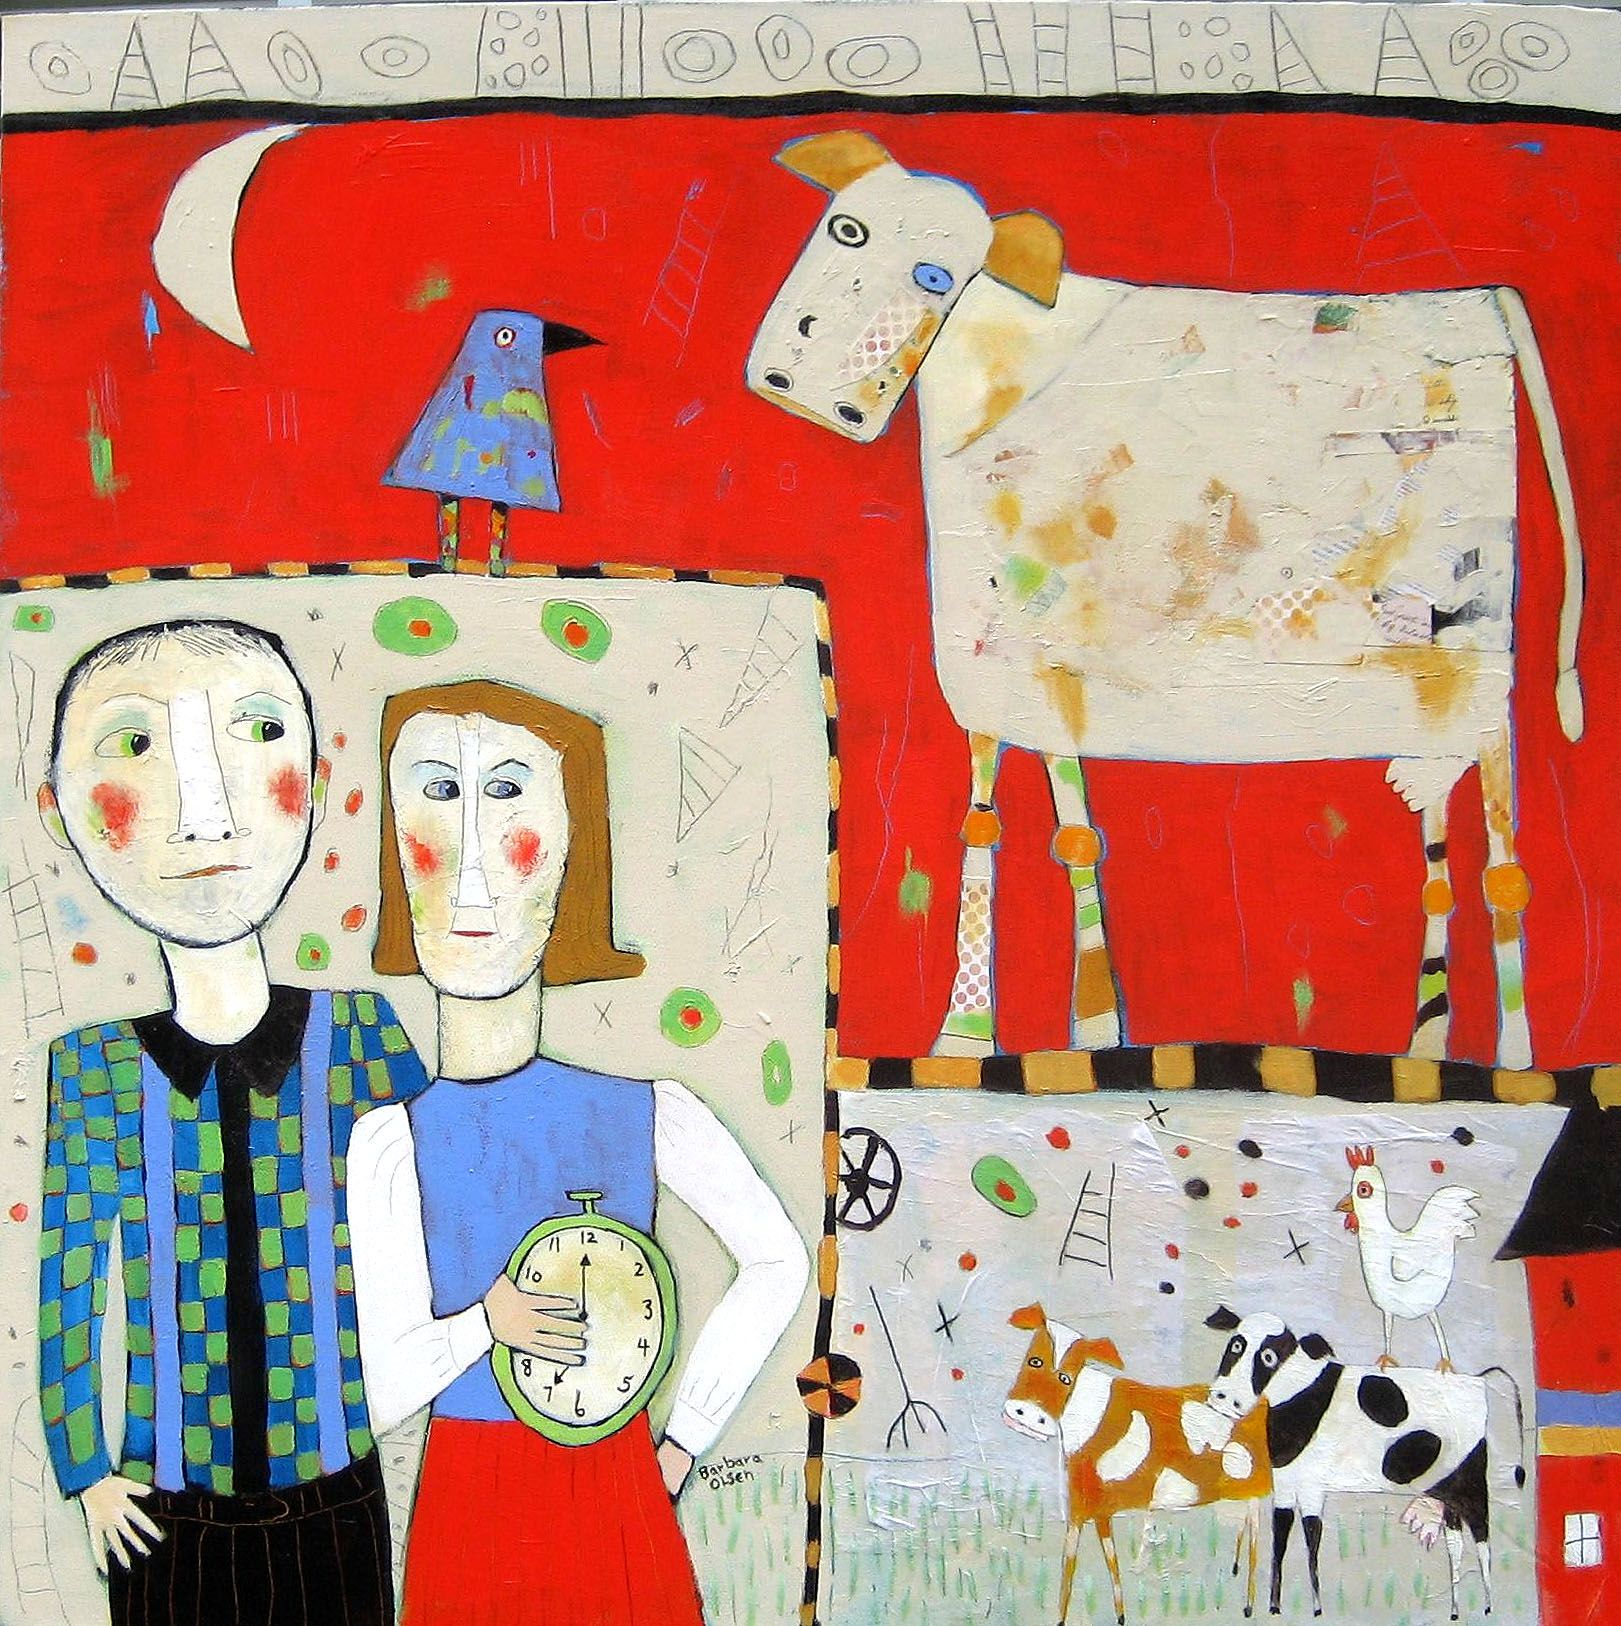 Waiting for the cows to come home. Mixed media on canvas. Barbara Olsen